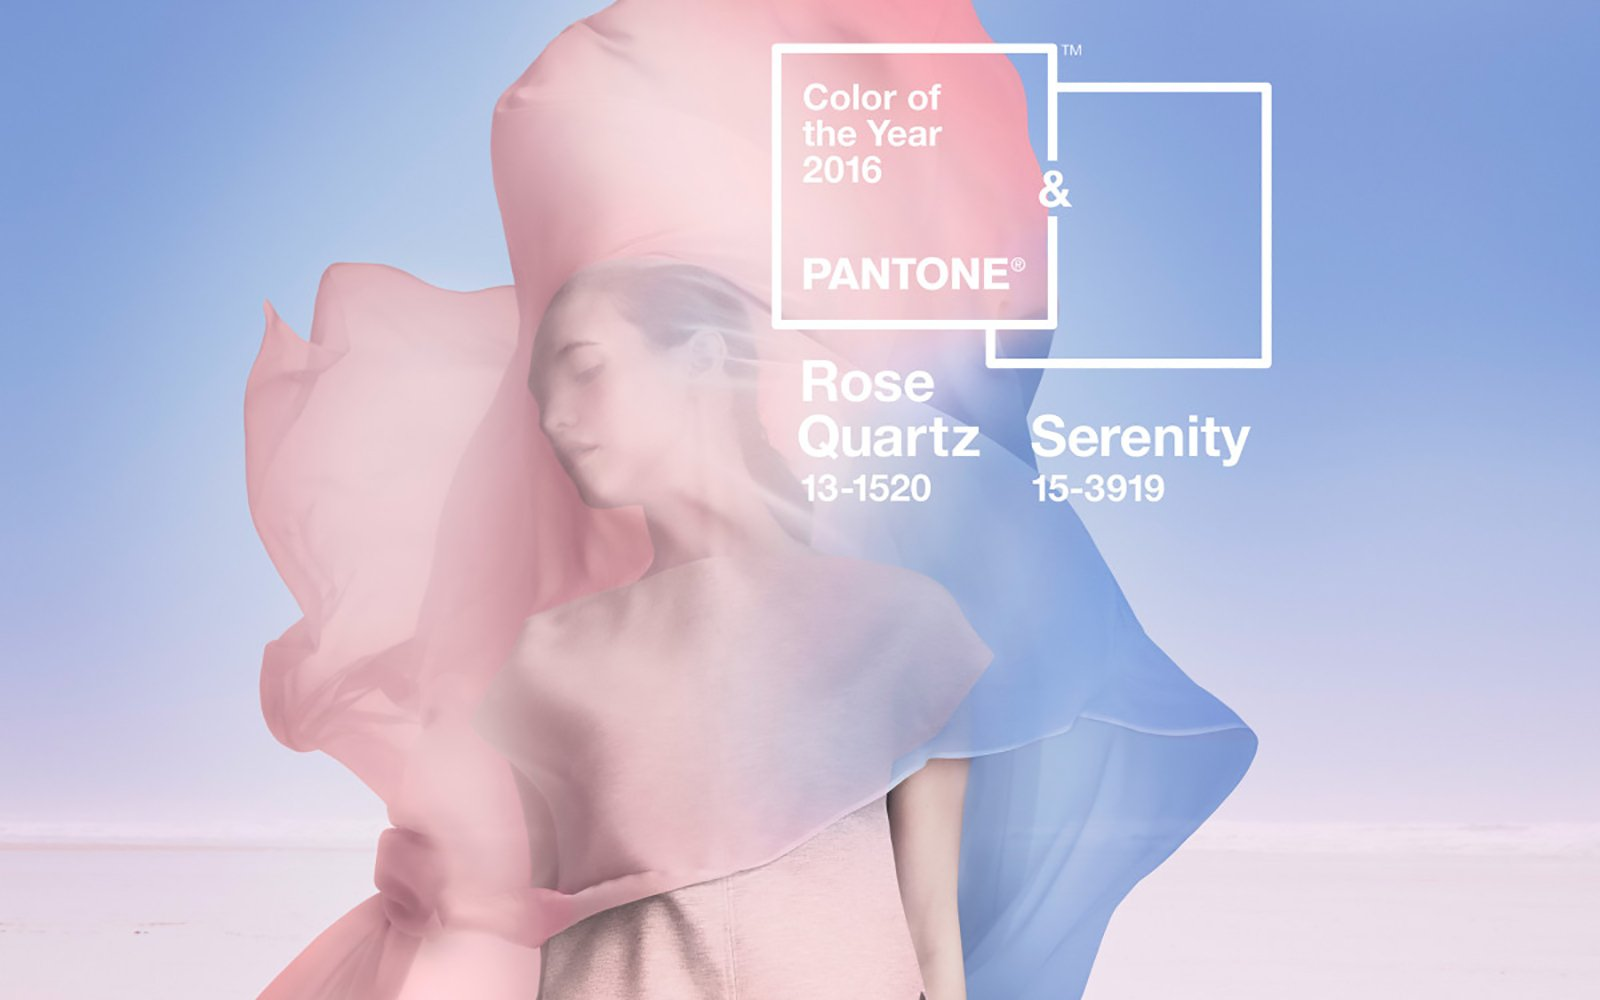 Pantone and its Worldwide Influence